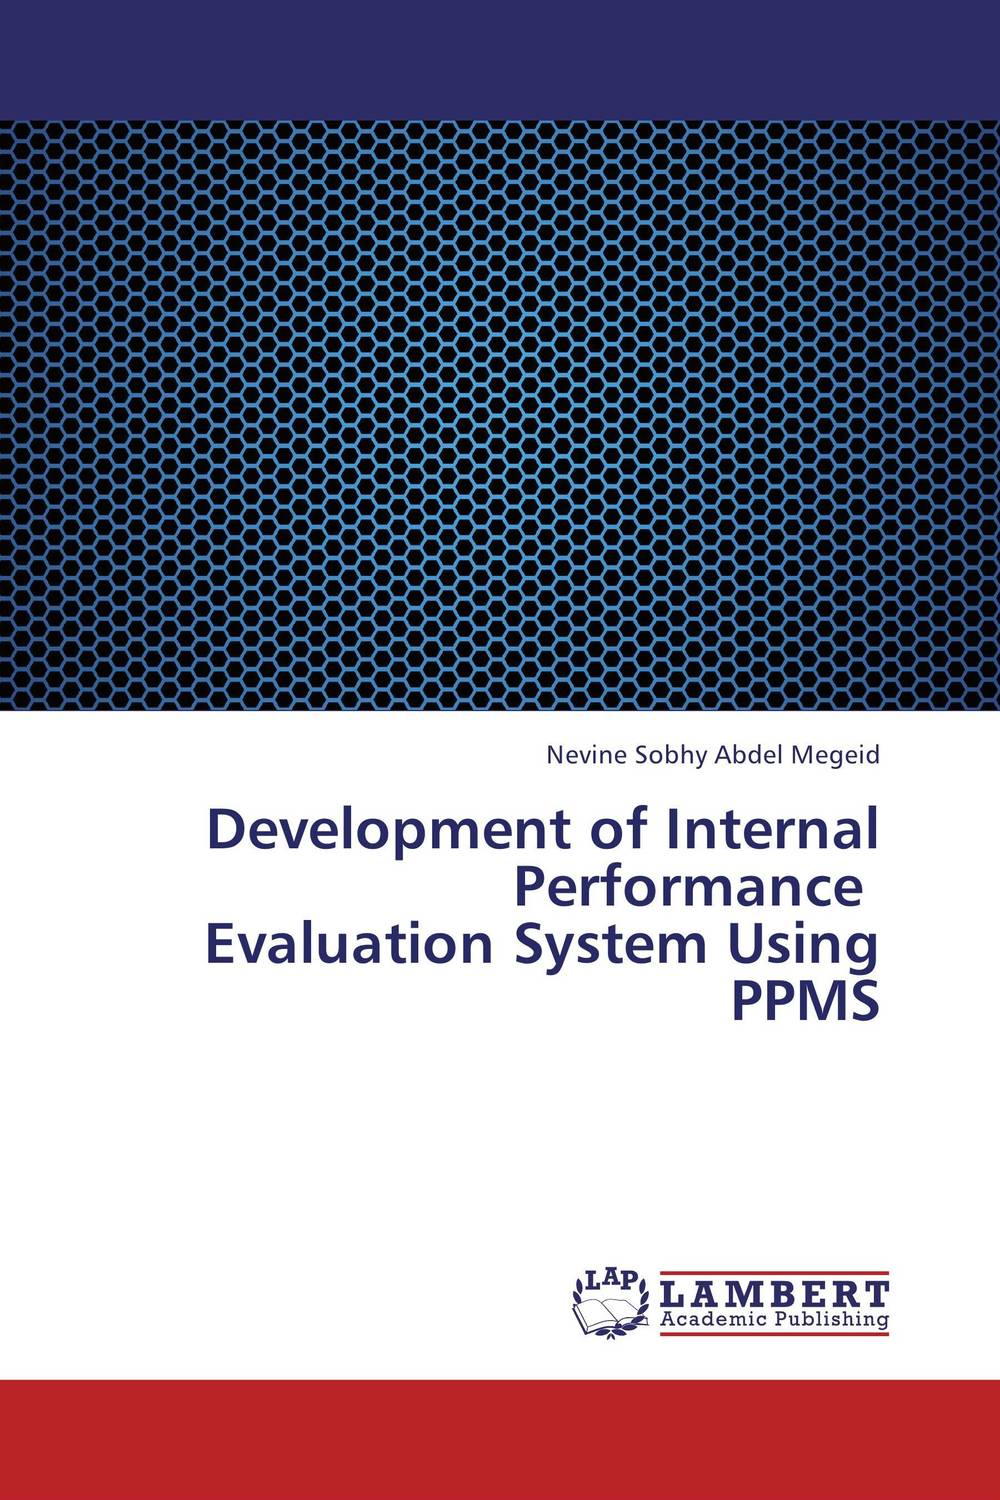 Development of Internal Performance   Evaluation System Using PPMS david parmenter key performance indicators developing implementing and using winning kpis